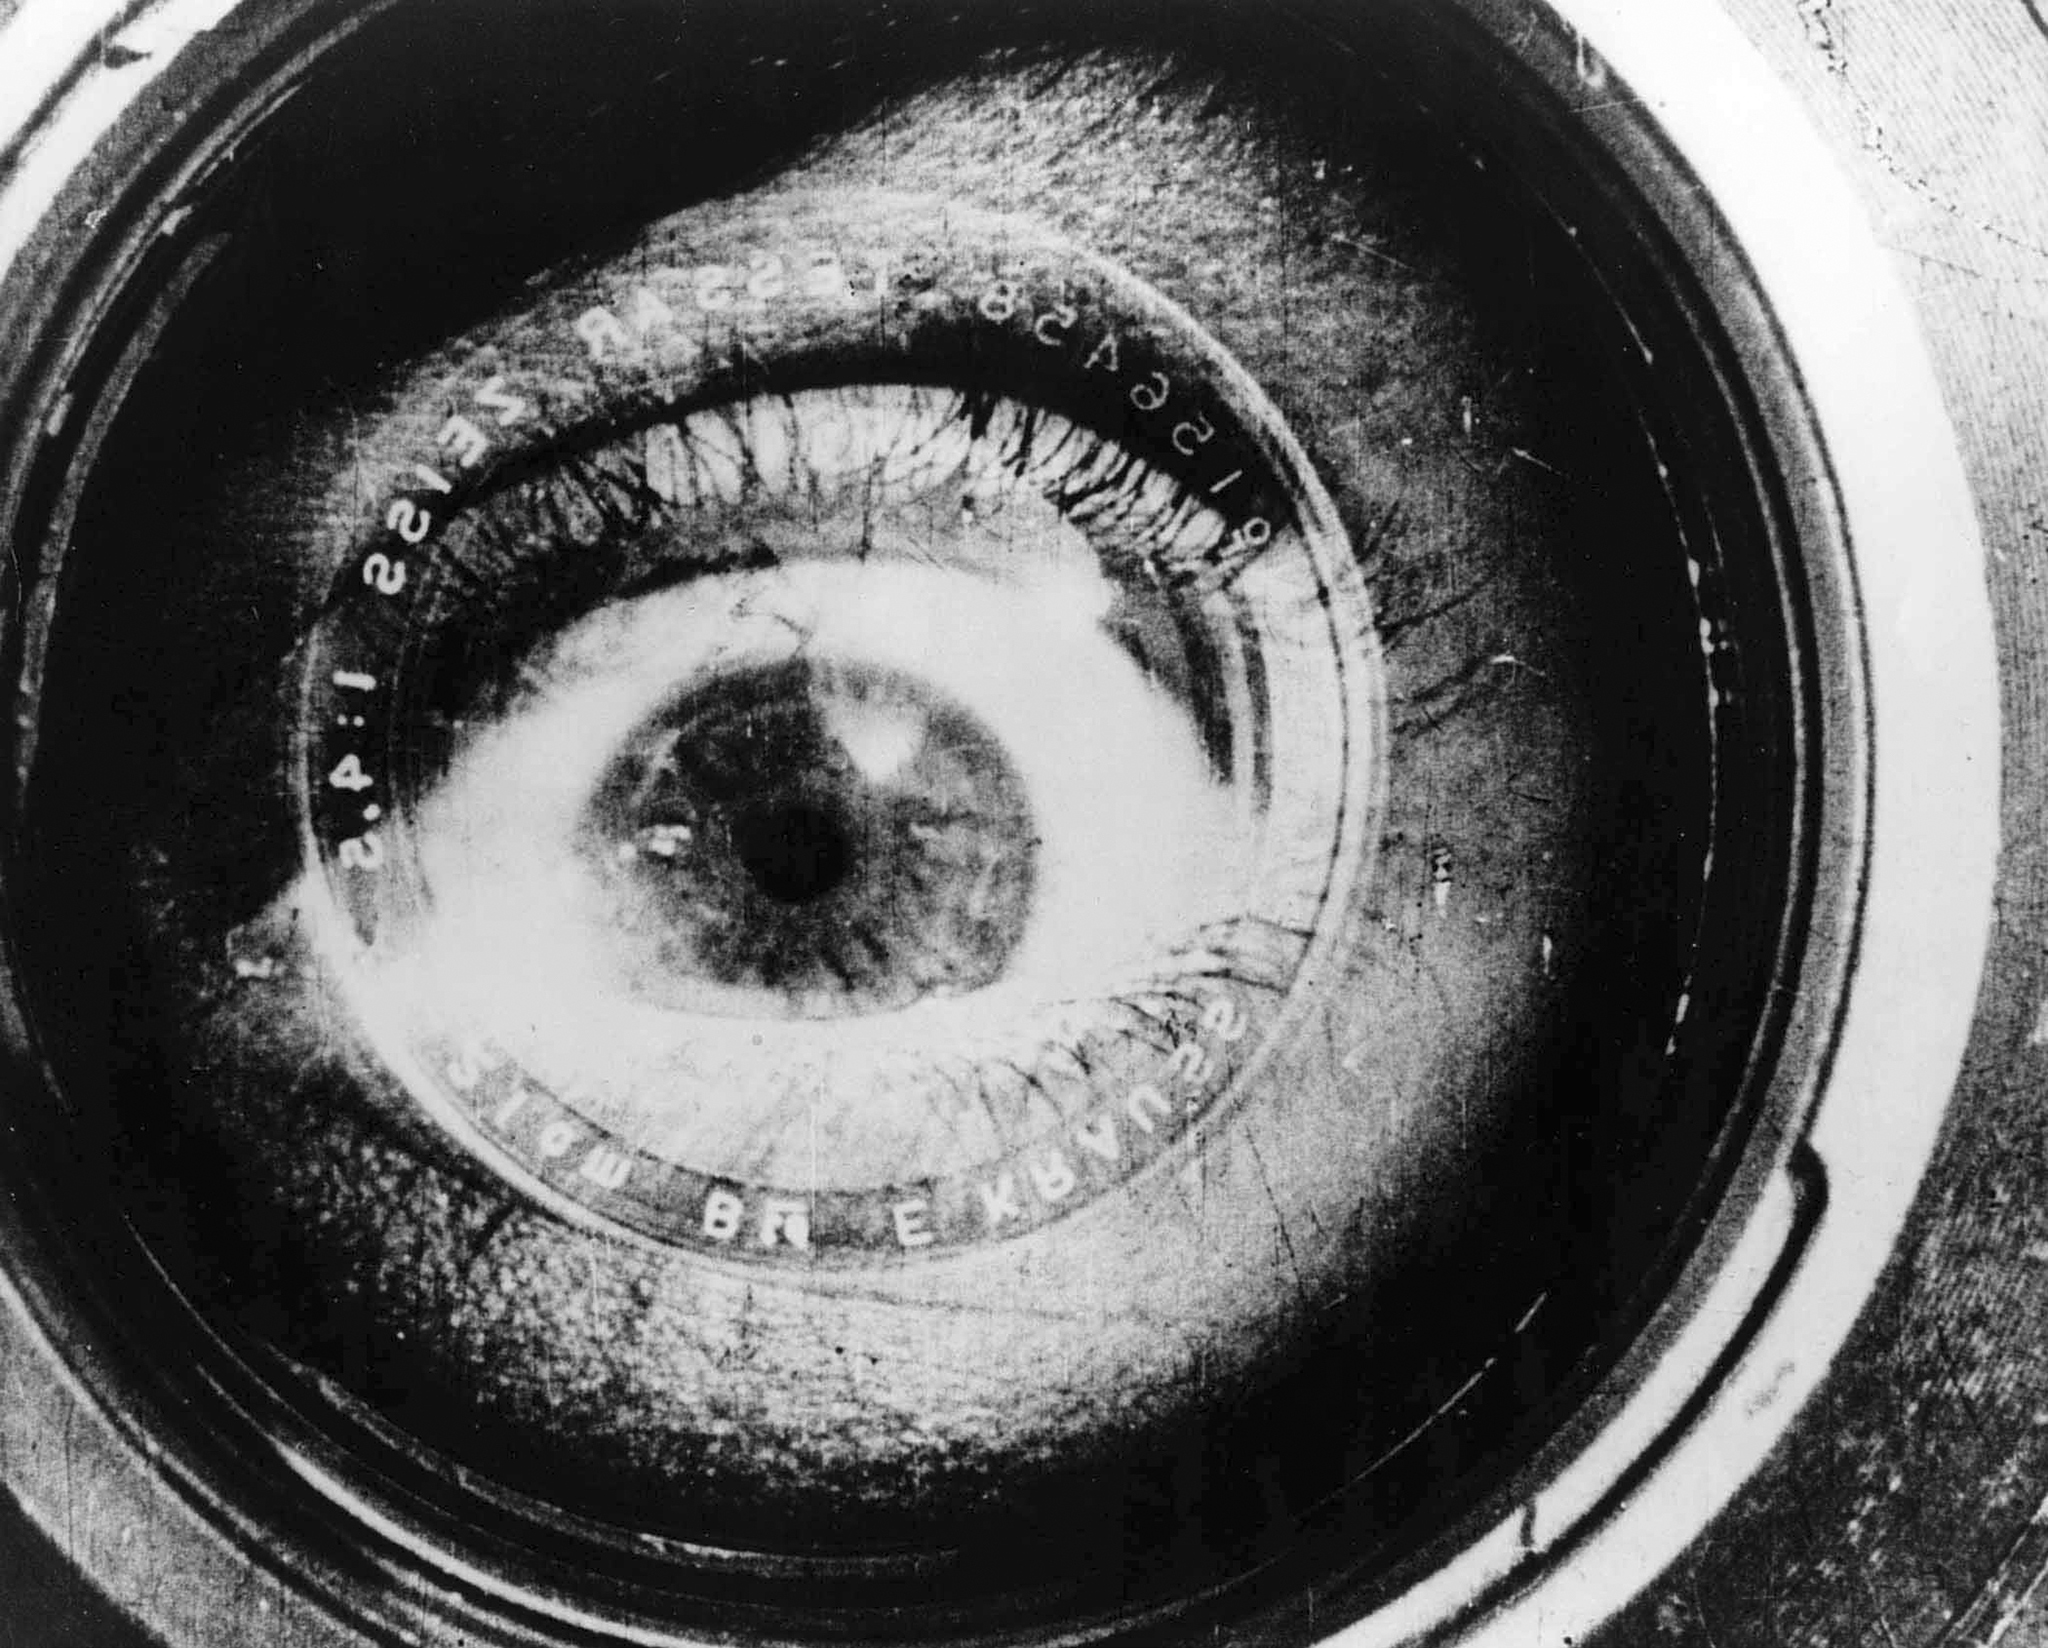 Still from Dziga Vertov's The Man with a Movie Camera (1929). Photo: Photofest/©Amkino Corporation